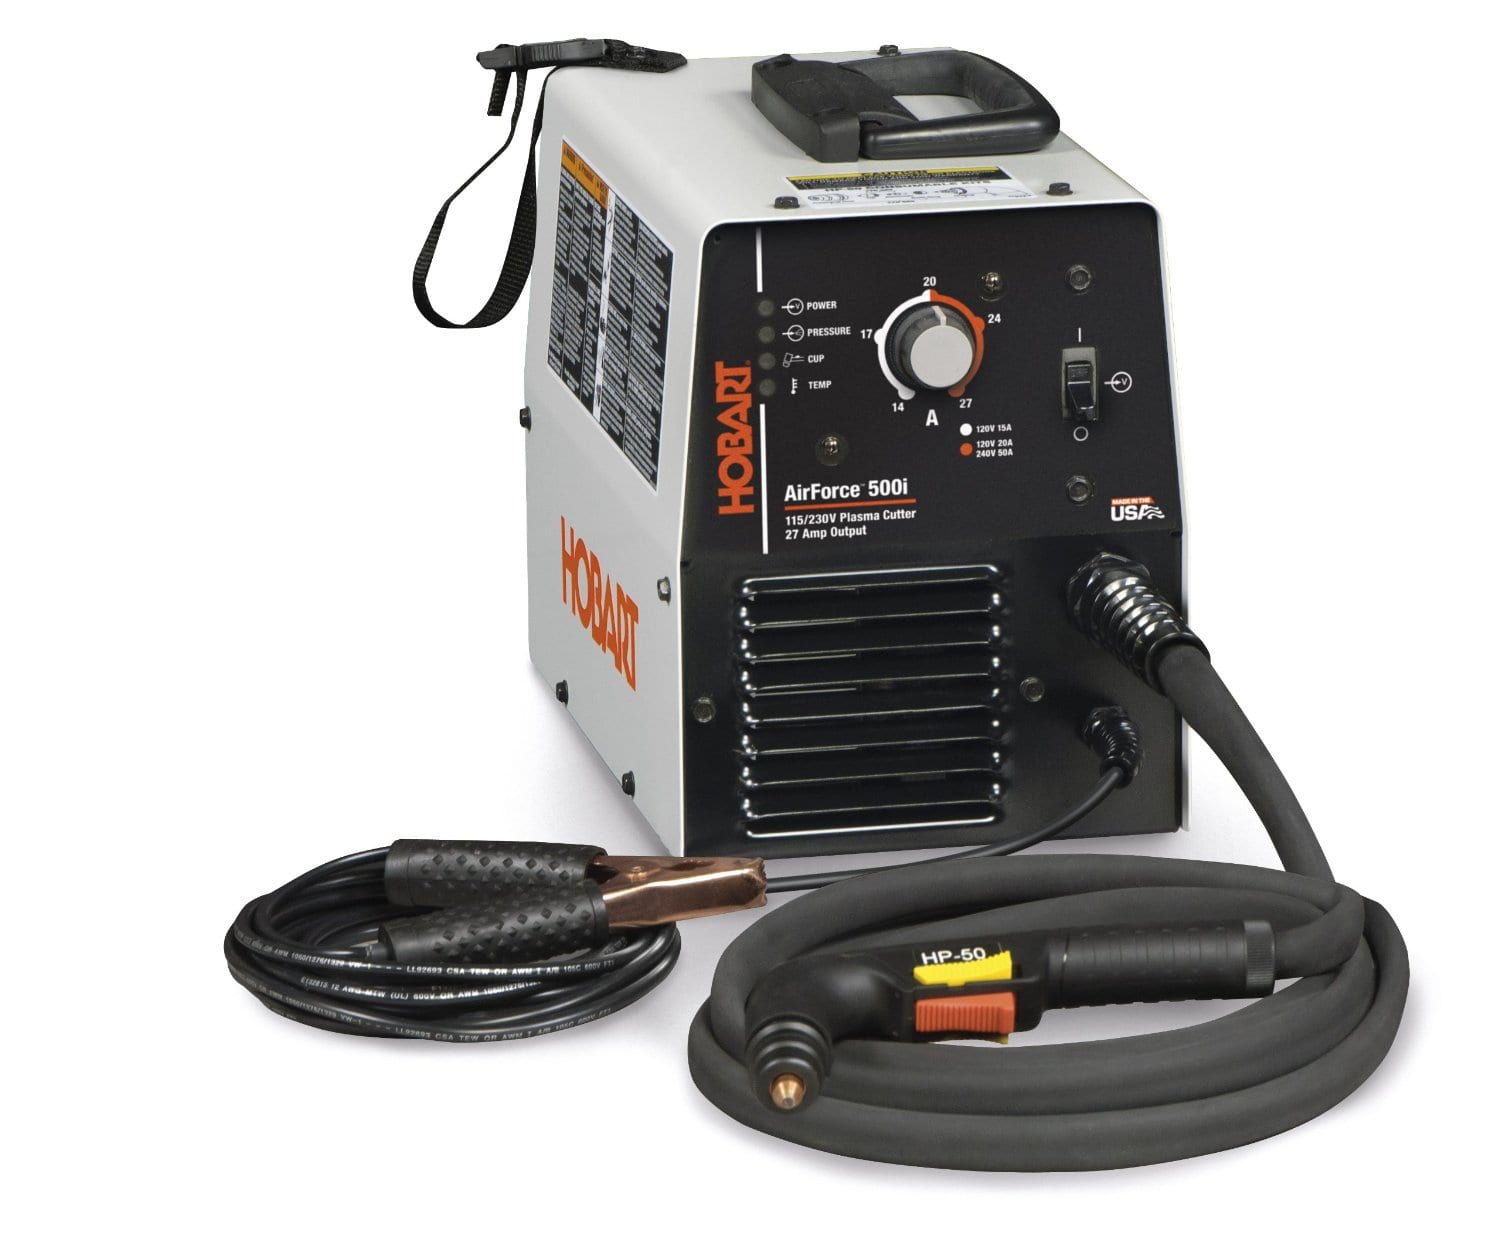 Best Hobart Plasma Cutter Review Our Top 4 Welding Stars 250 Mig Welder Wiring Diagram 500548 Airforce 500i 115 230 Volt